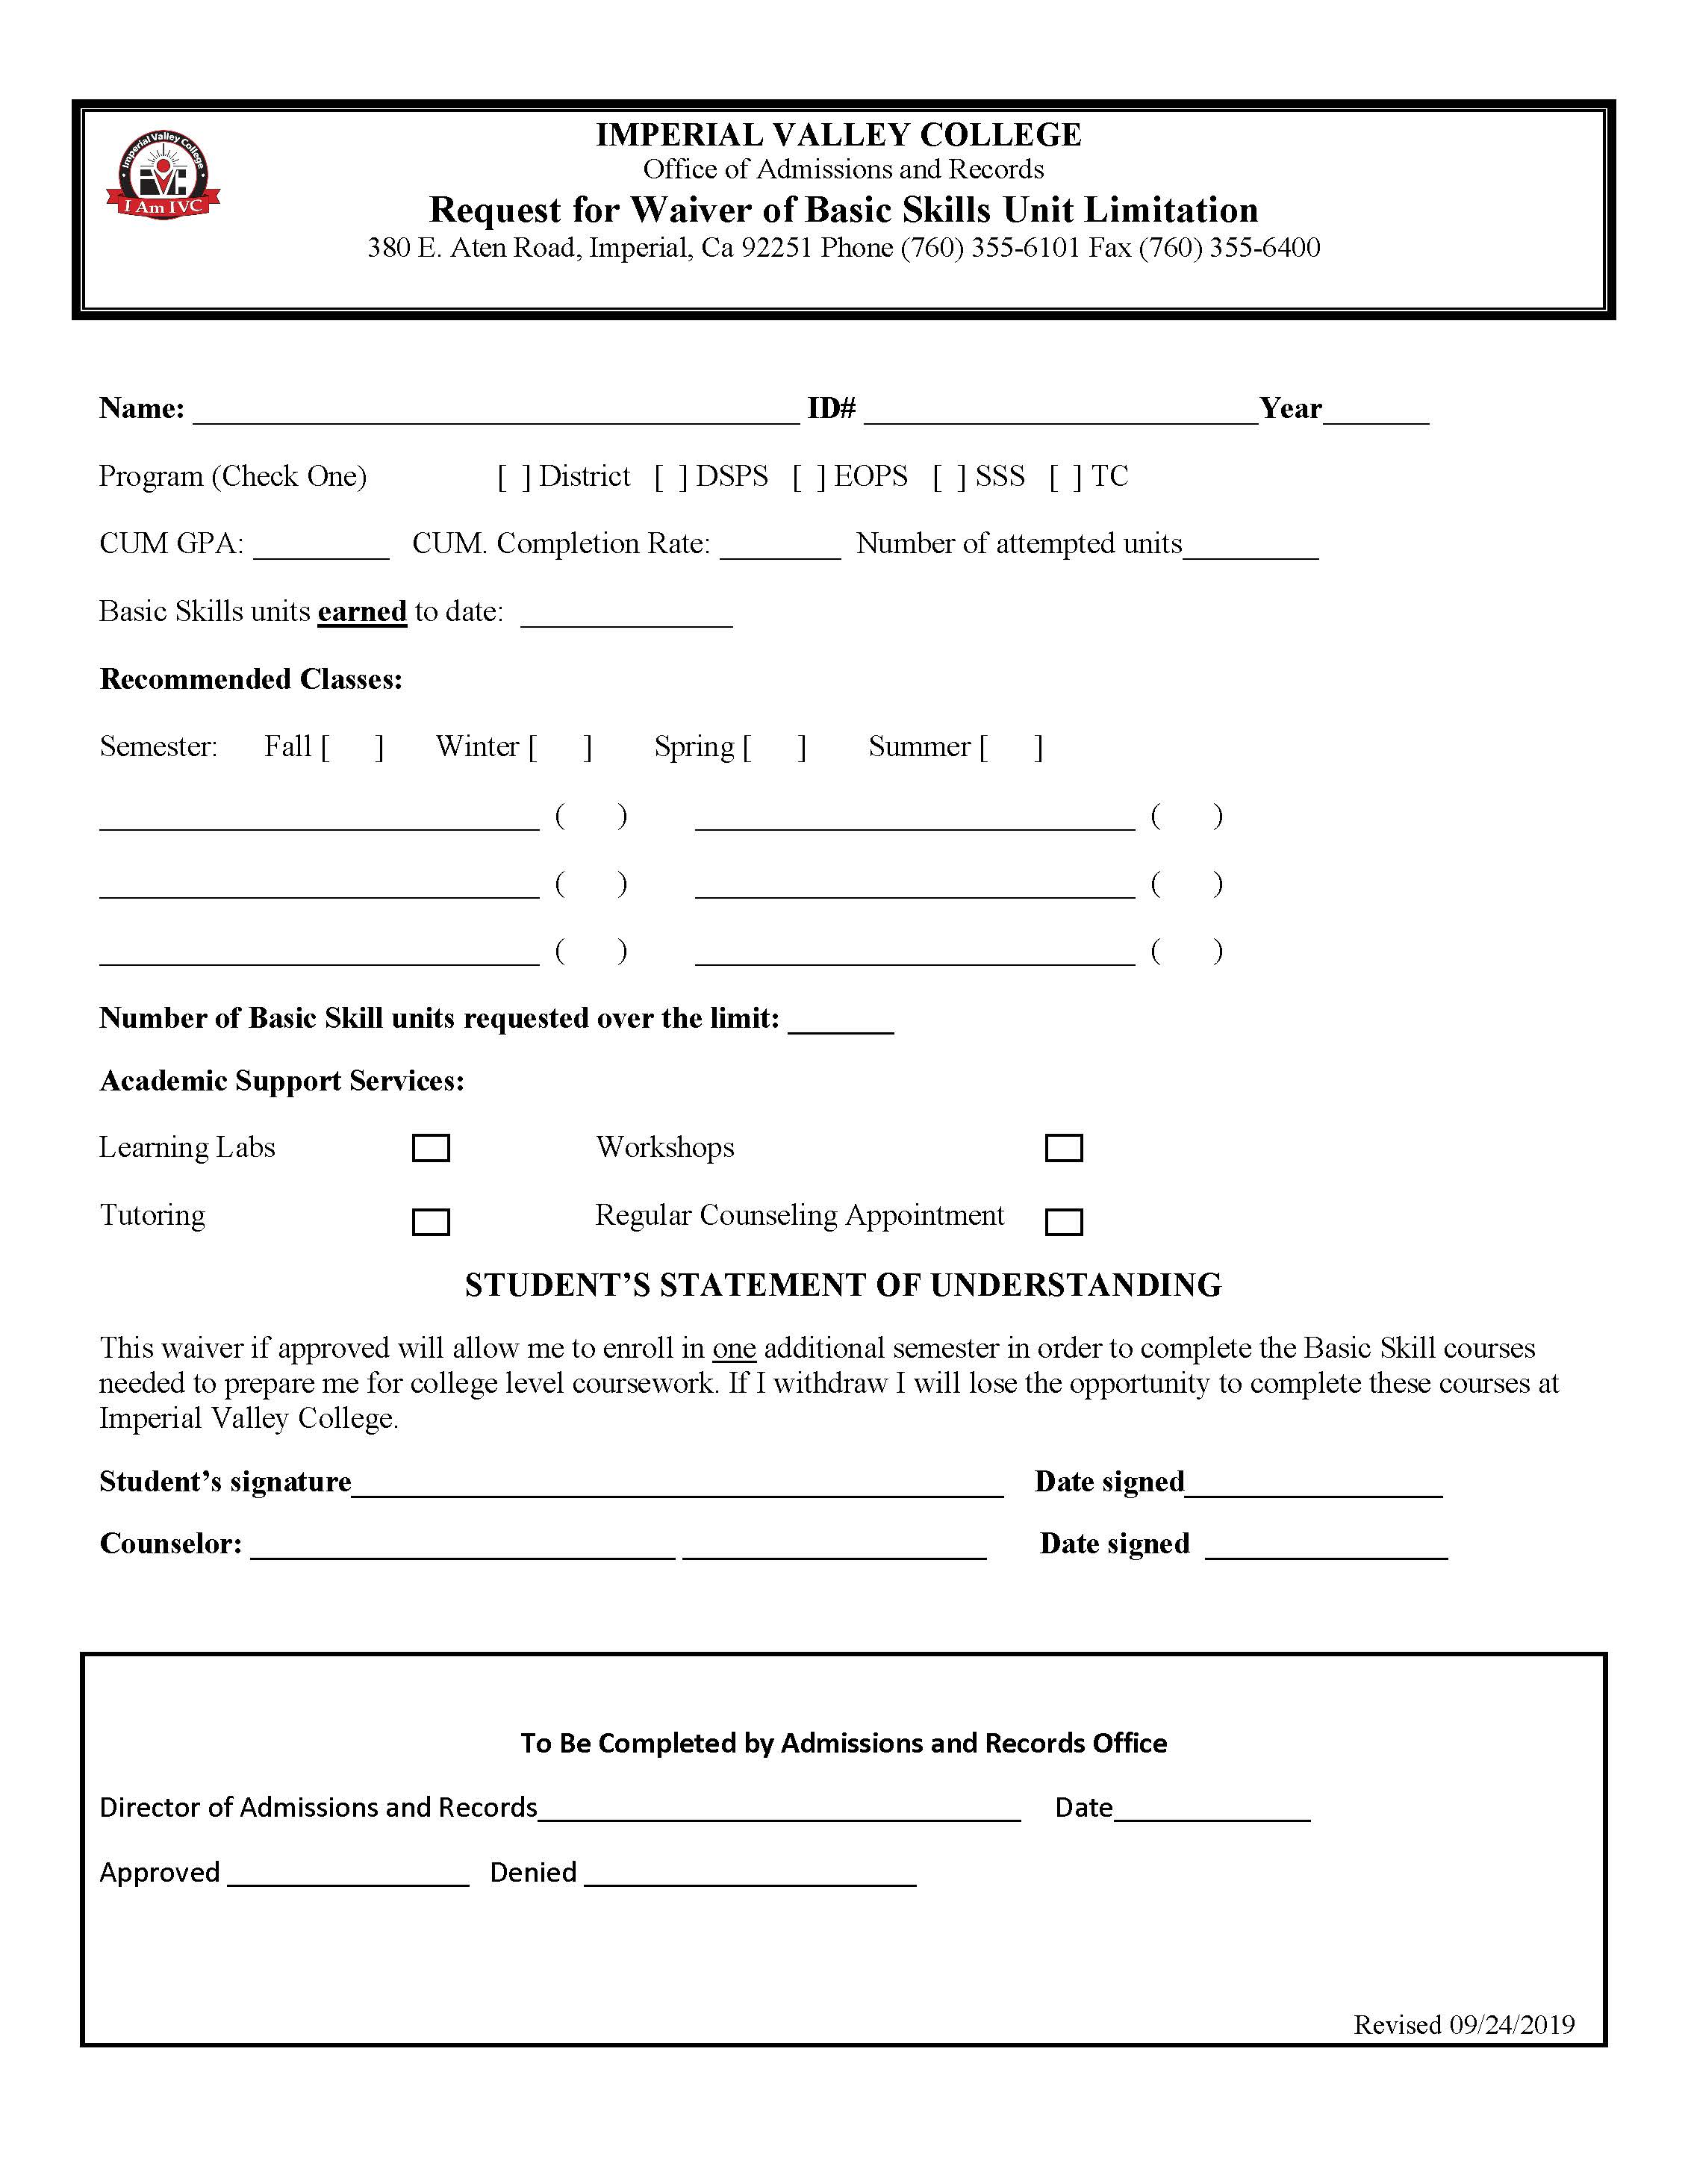 Request Form - Waiver for 30 Unit Basic Skills Limit